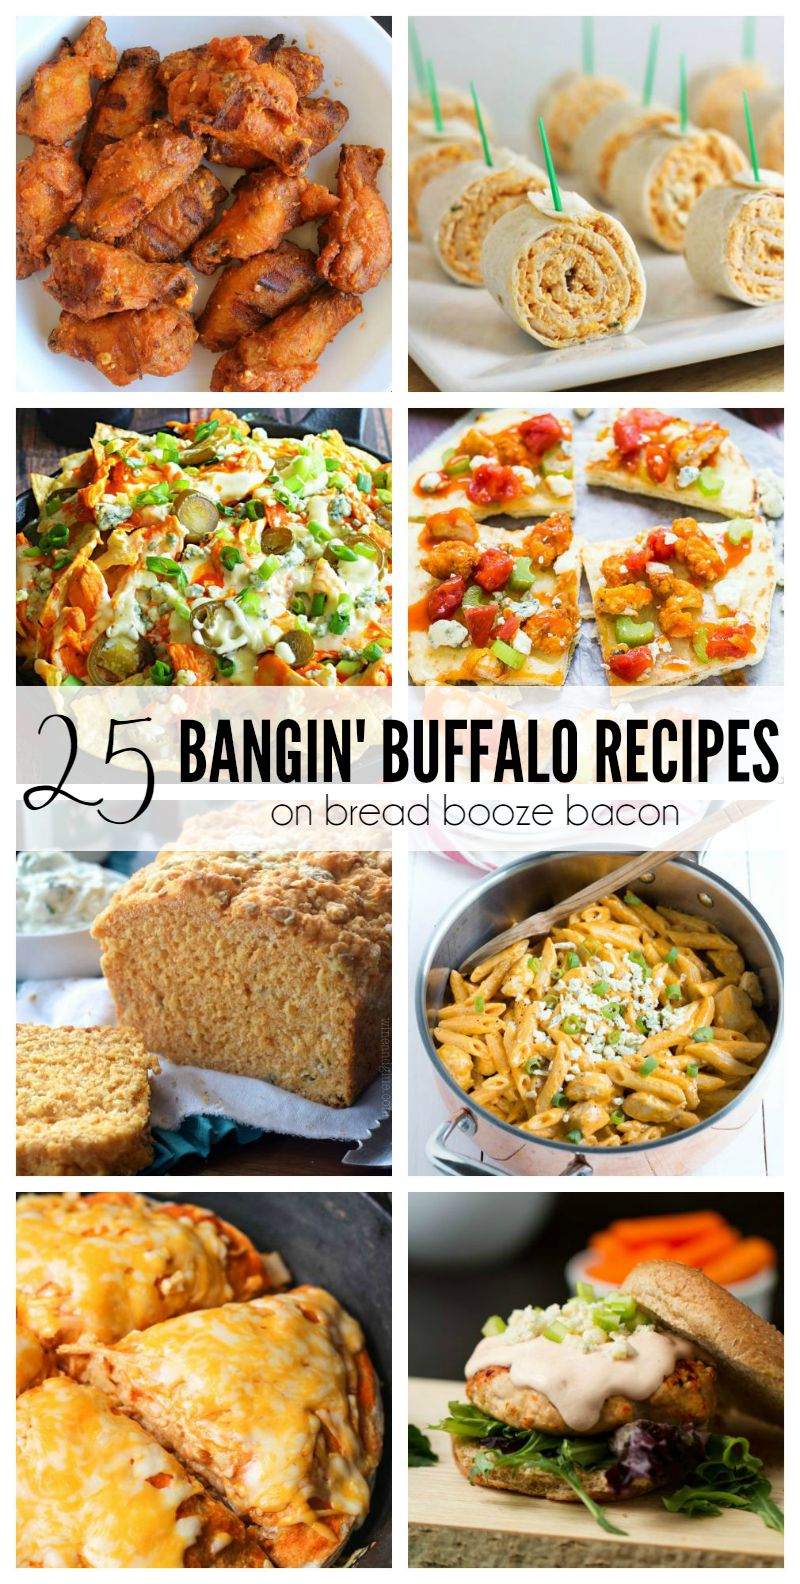 I'm usually a wimp when it comes to spicy food, but throw something buffalo flavored on my plate and I'll fight you off with a fork! Get ready for a kick in your mouth from these 25 Bangin' Buffalo Recipes. They'll make your tummy happy. Promise.